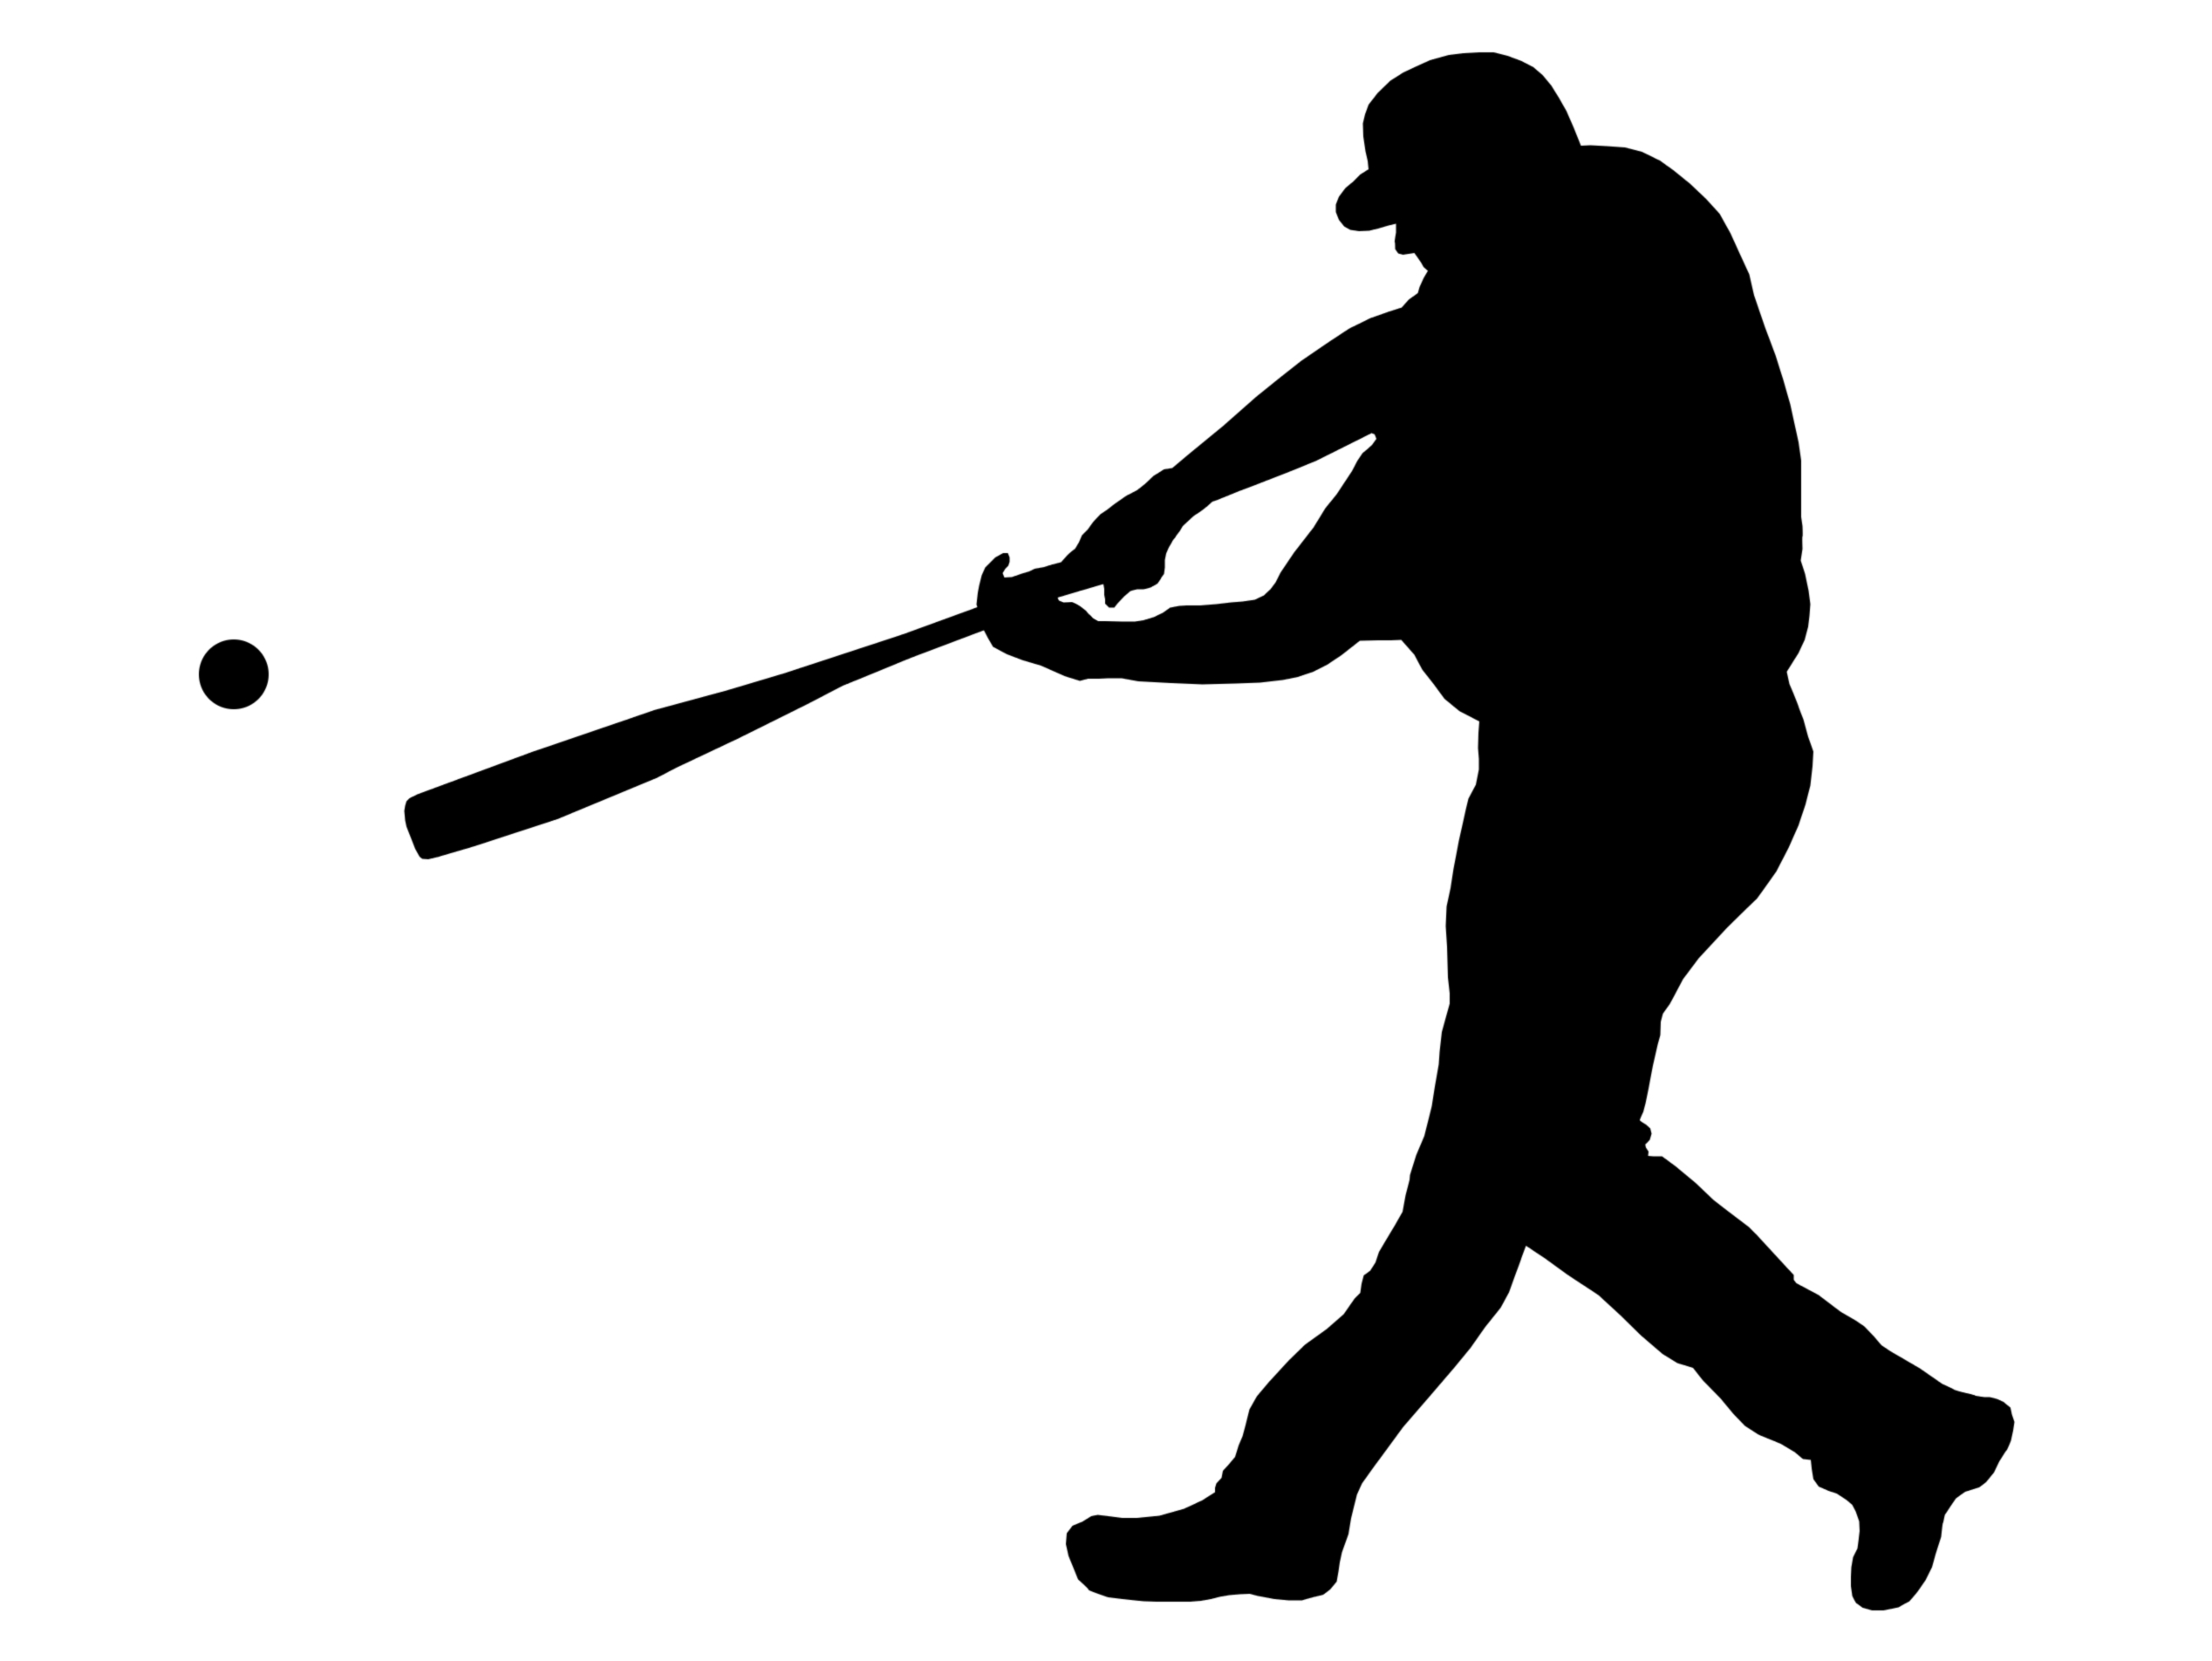 Softball Silhouette Clip Art